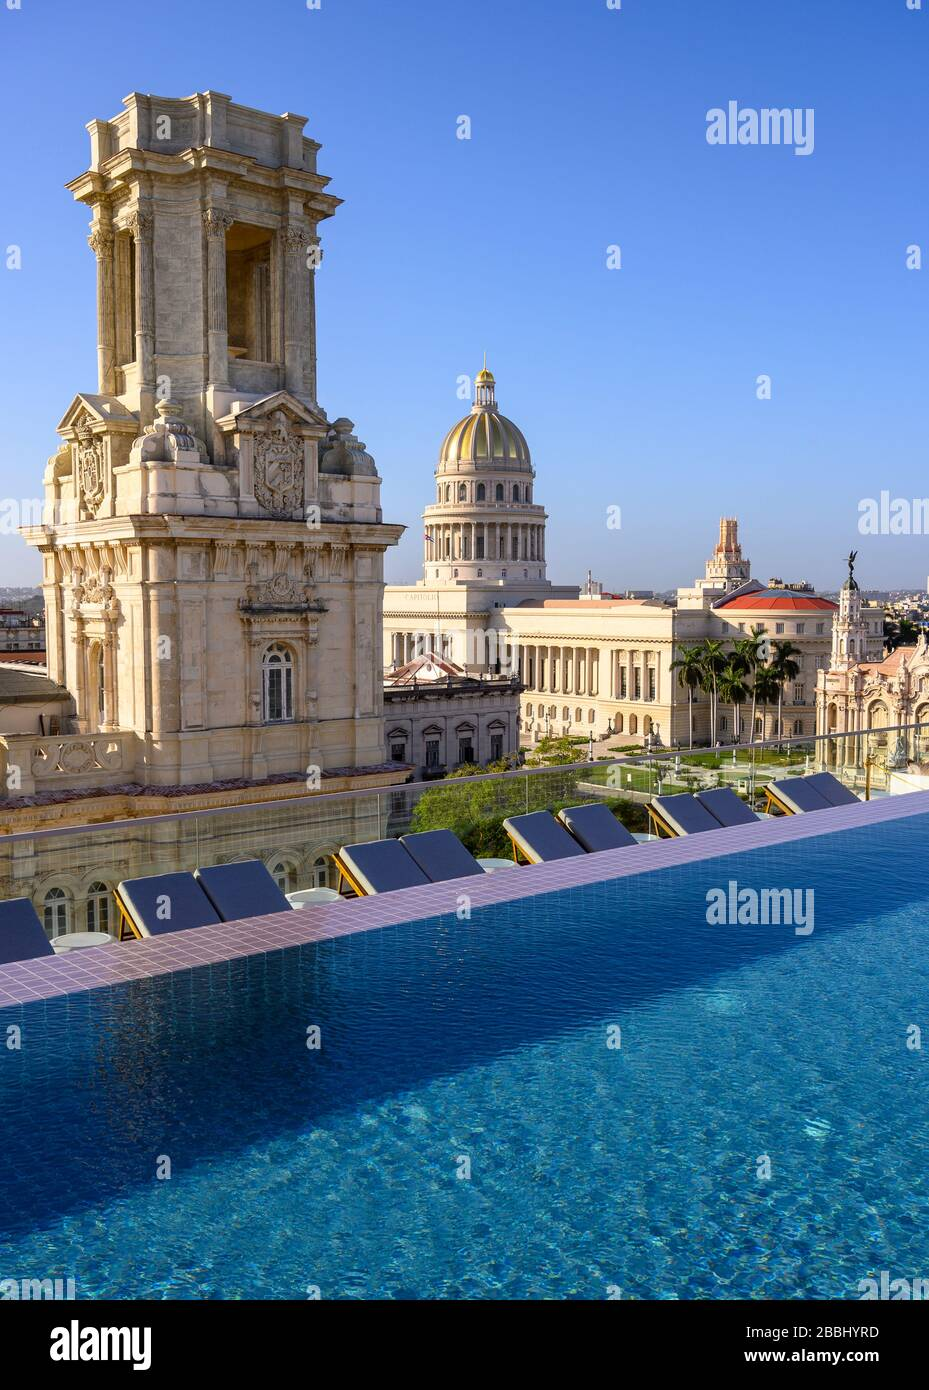 Rooftop view with  infinity pool of El Capitolio, or the National Capitol Building, and Museo Nacional de Bellas Artes, from roof of Gran Hotel Manzana Kempinski, Havana, Cuba Stock Photo